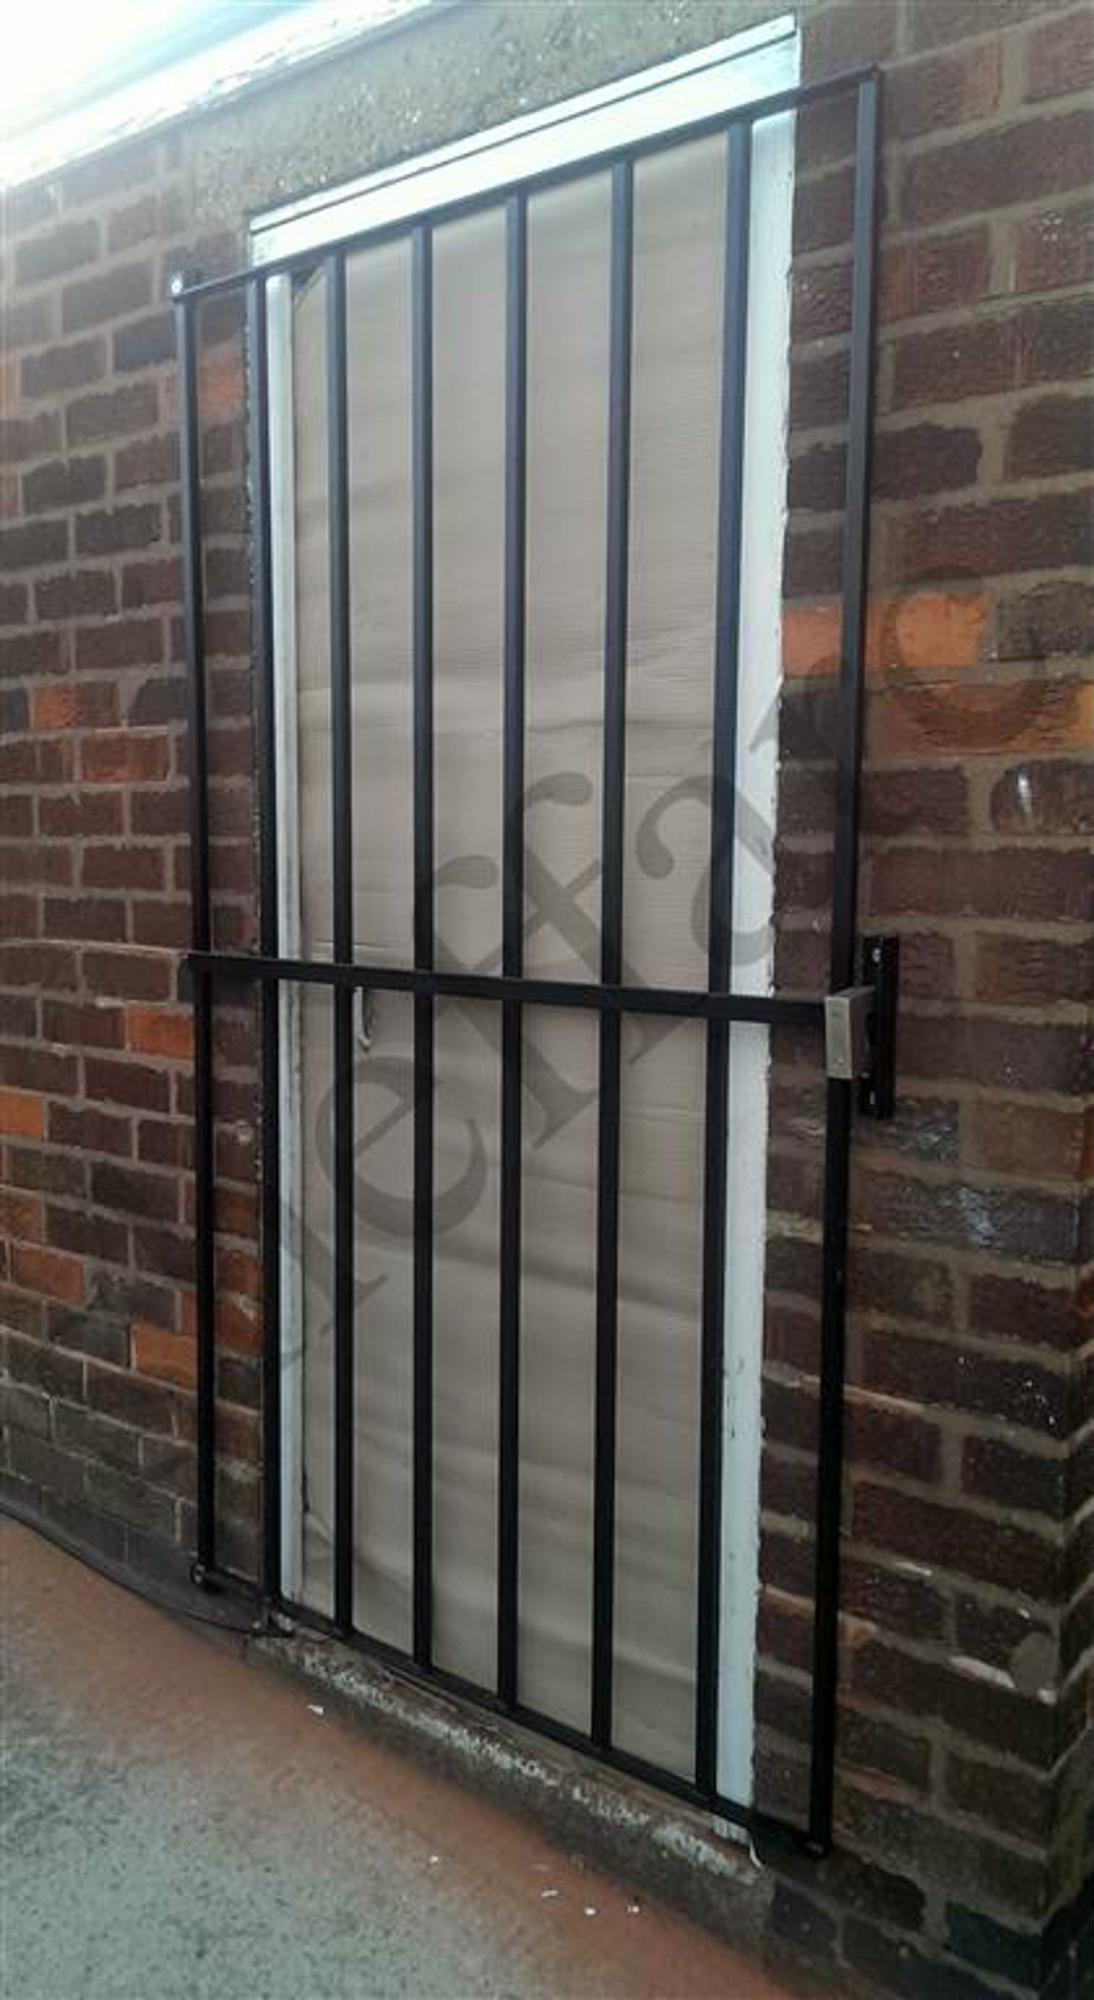 Steel Door Security Grille Gate For Home Office Or